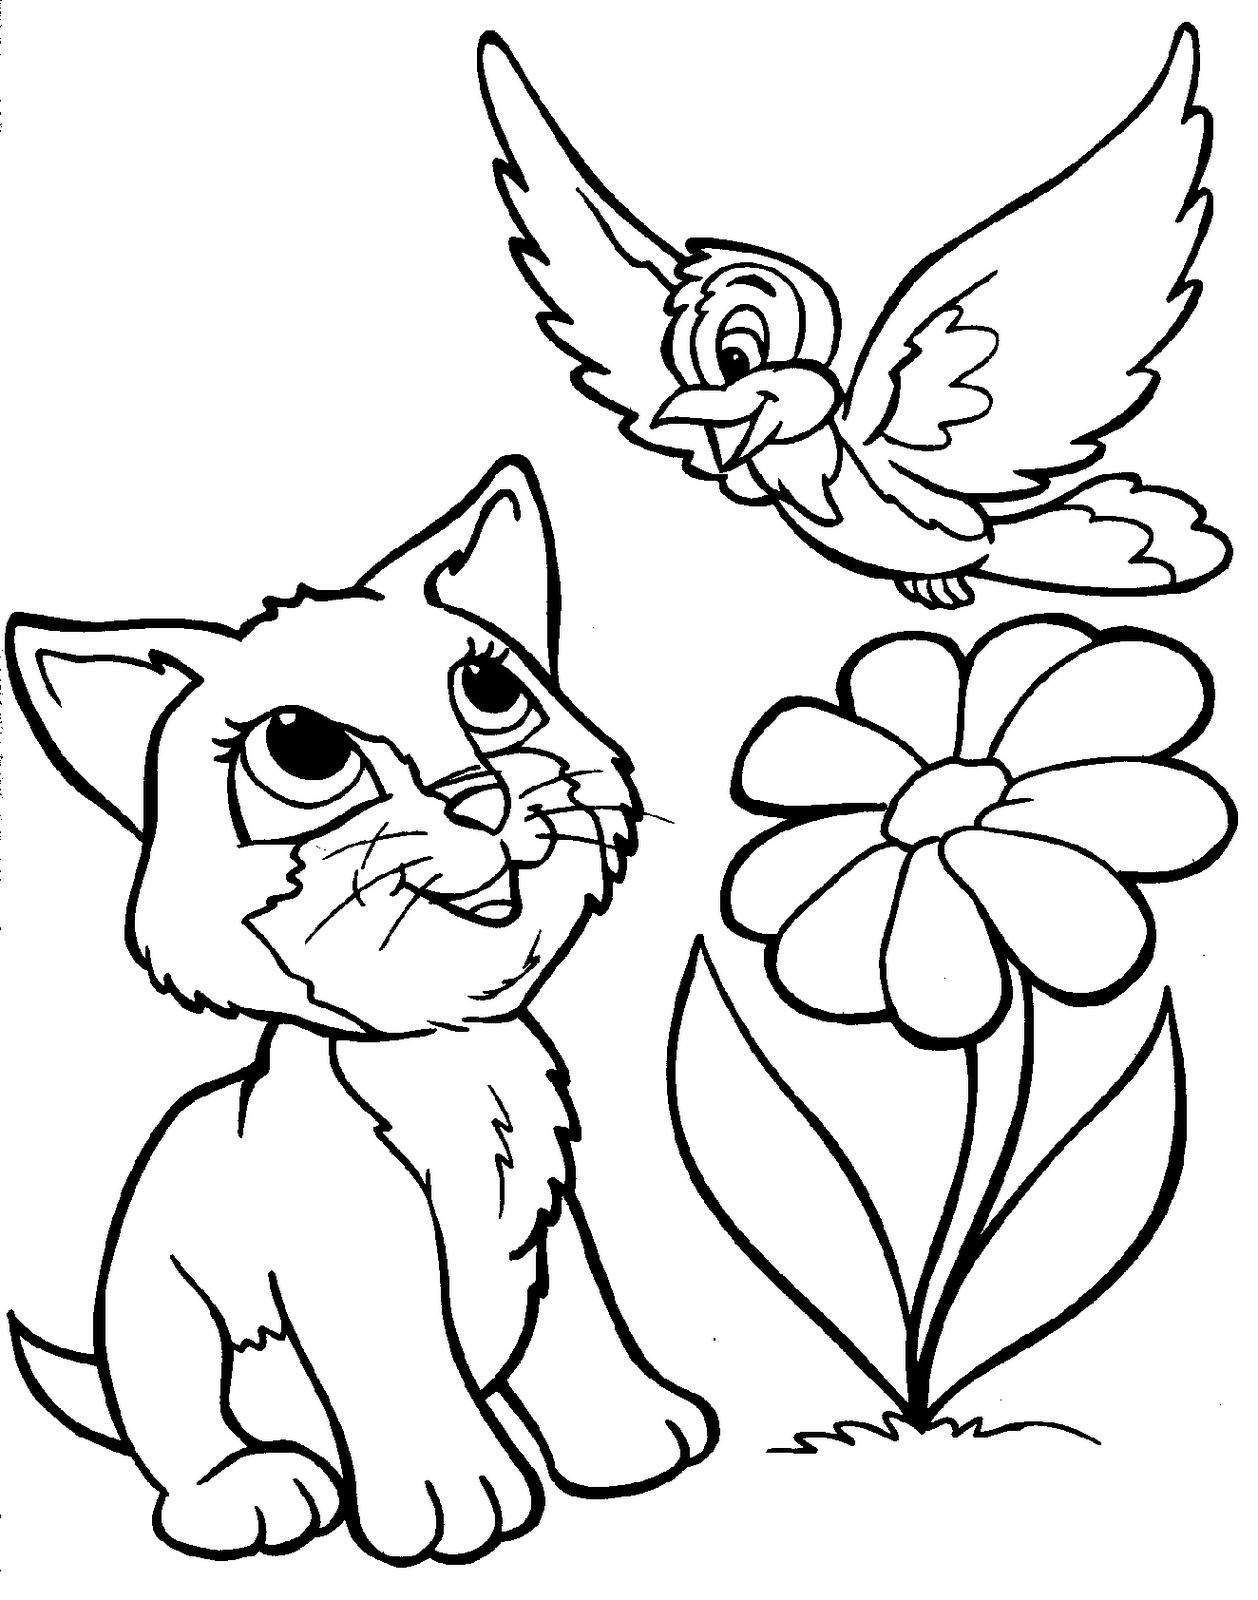 printable for cat lovers free kids coloring pagescoloring